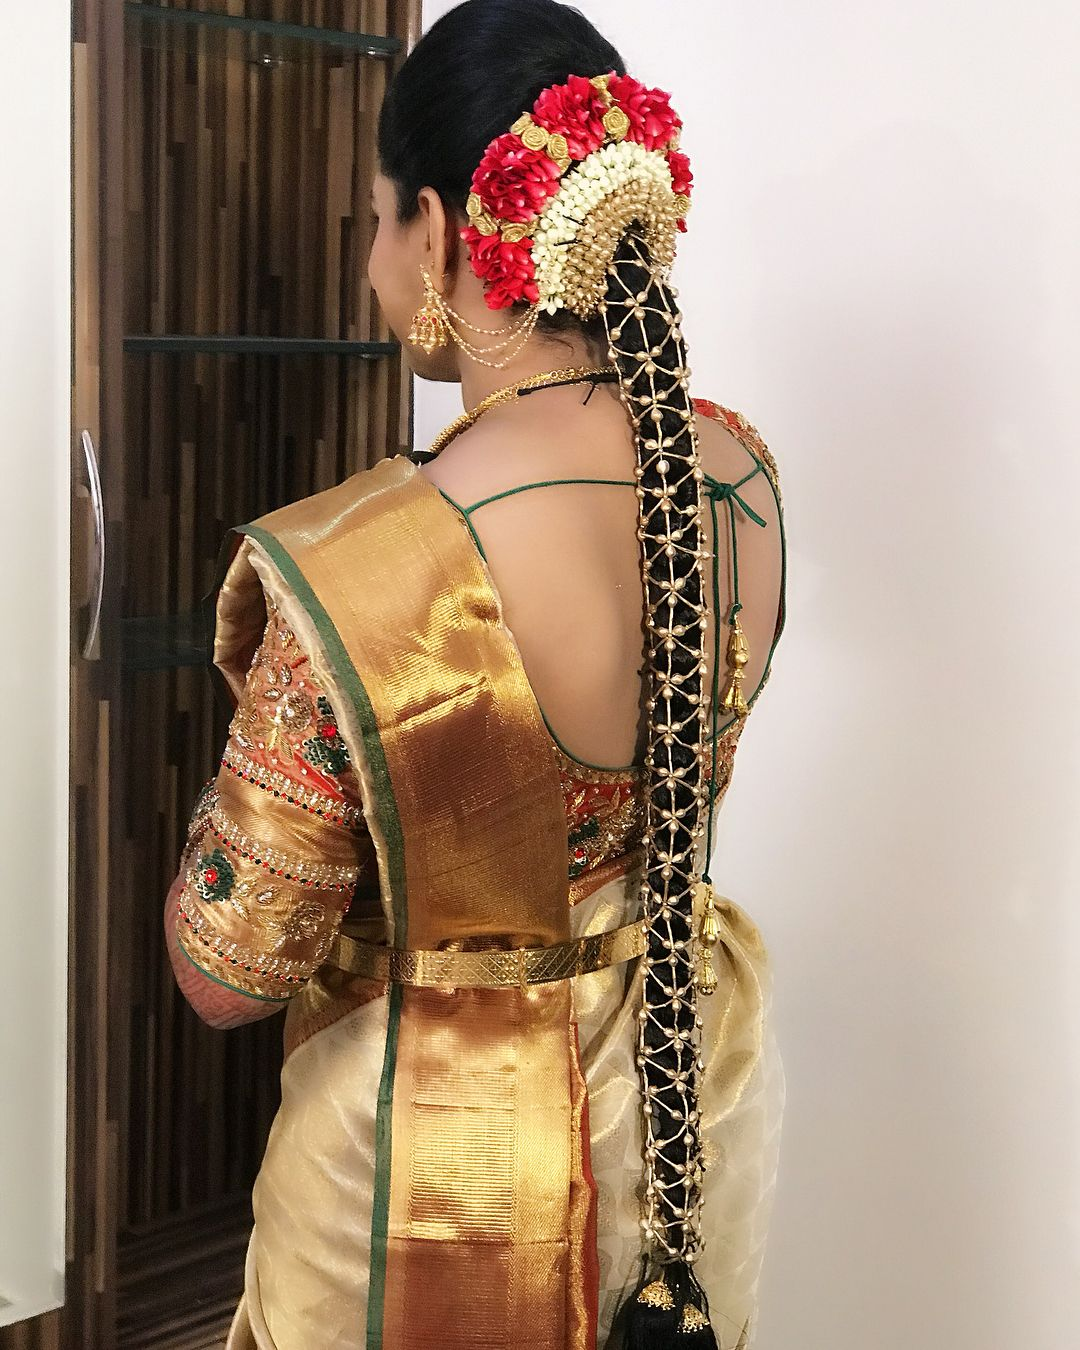 Kerala Party Hairstyles: South Indian Bride Hairstyle Image By Hemalatha Reddy On